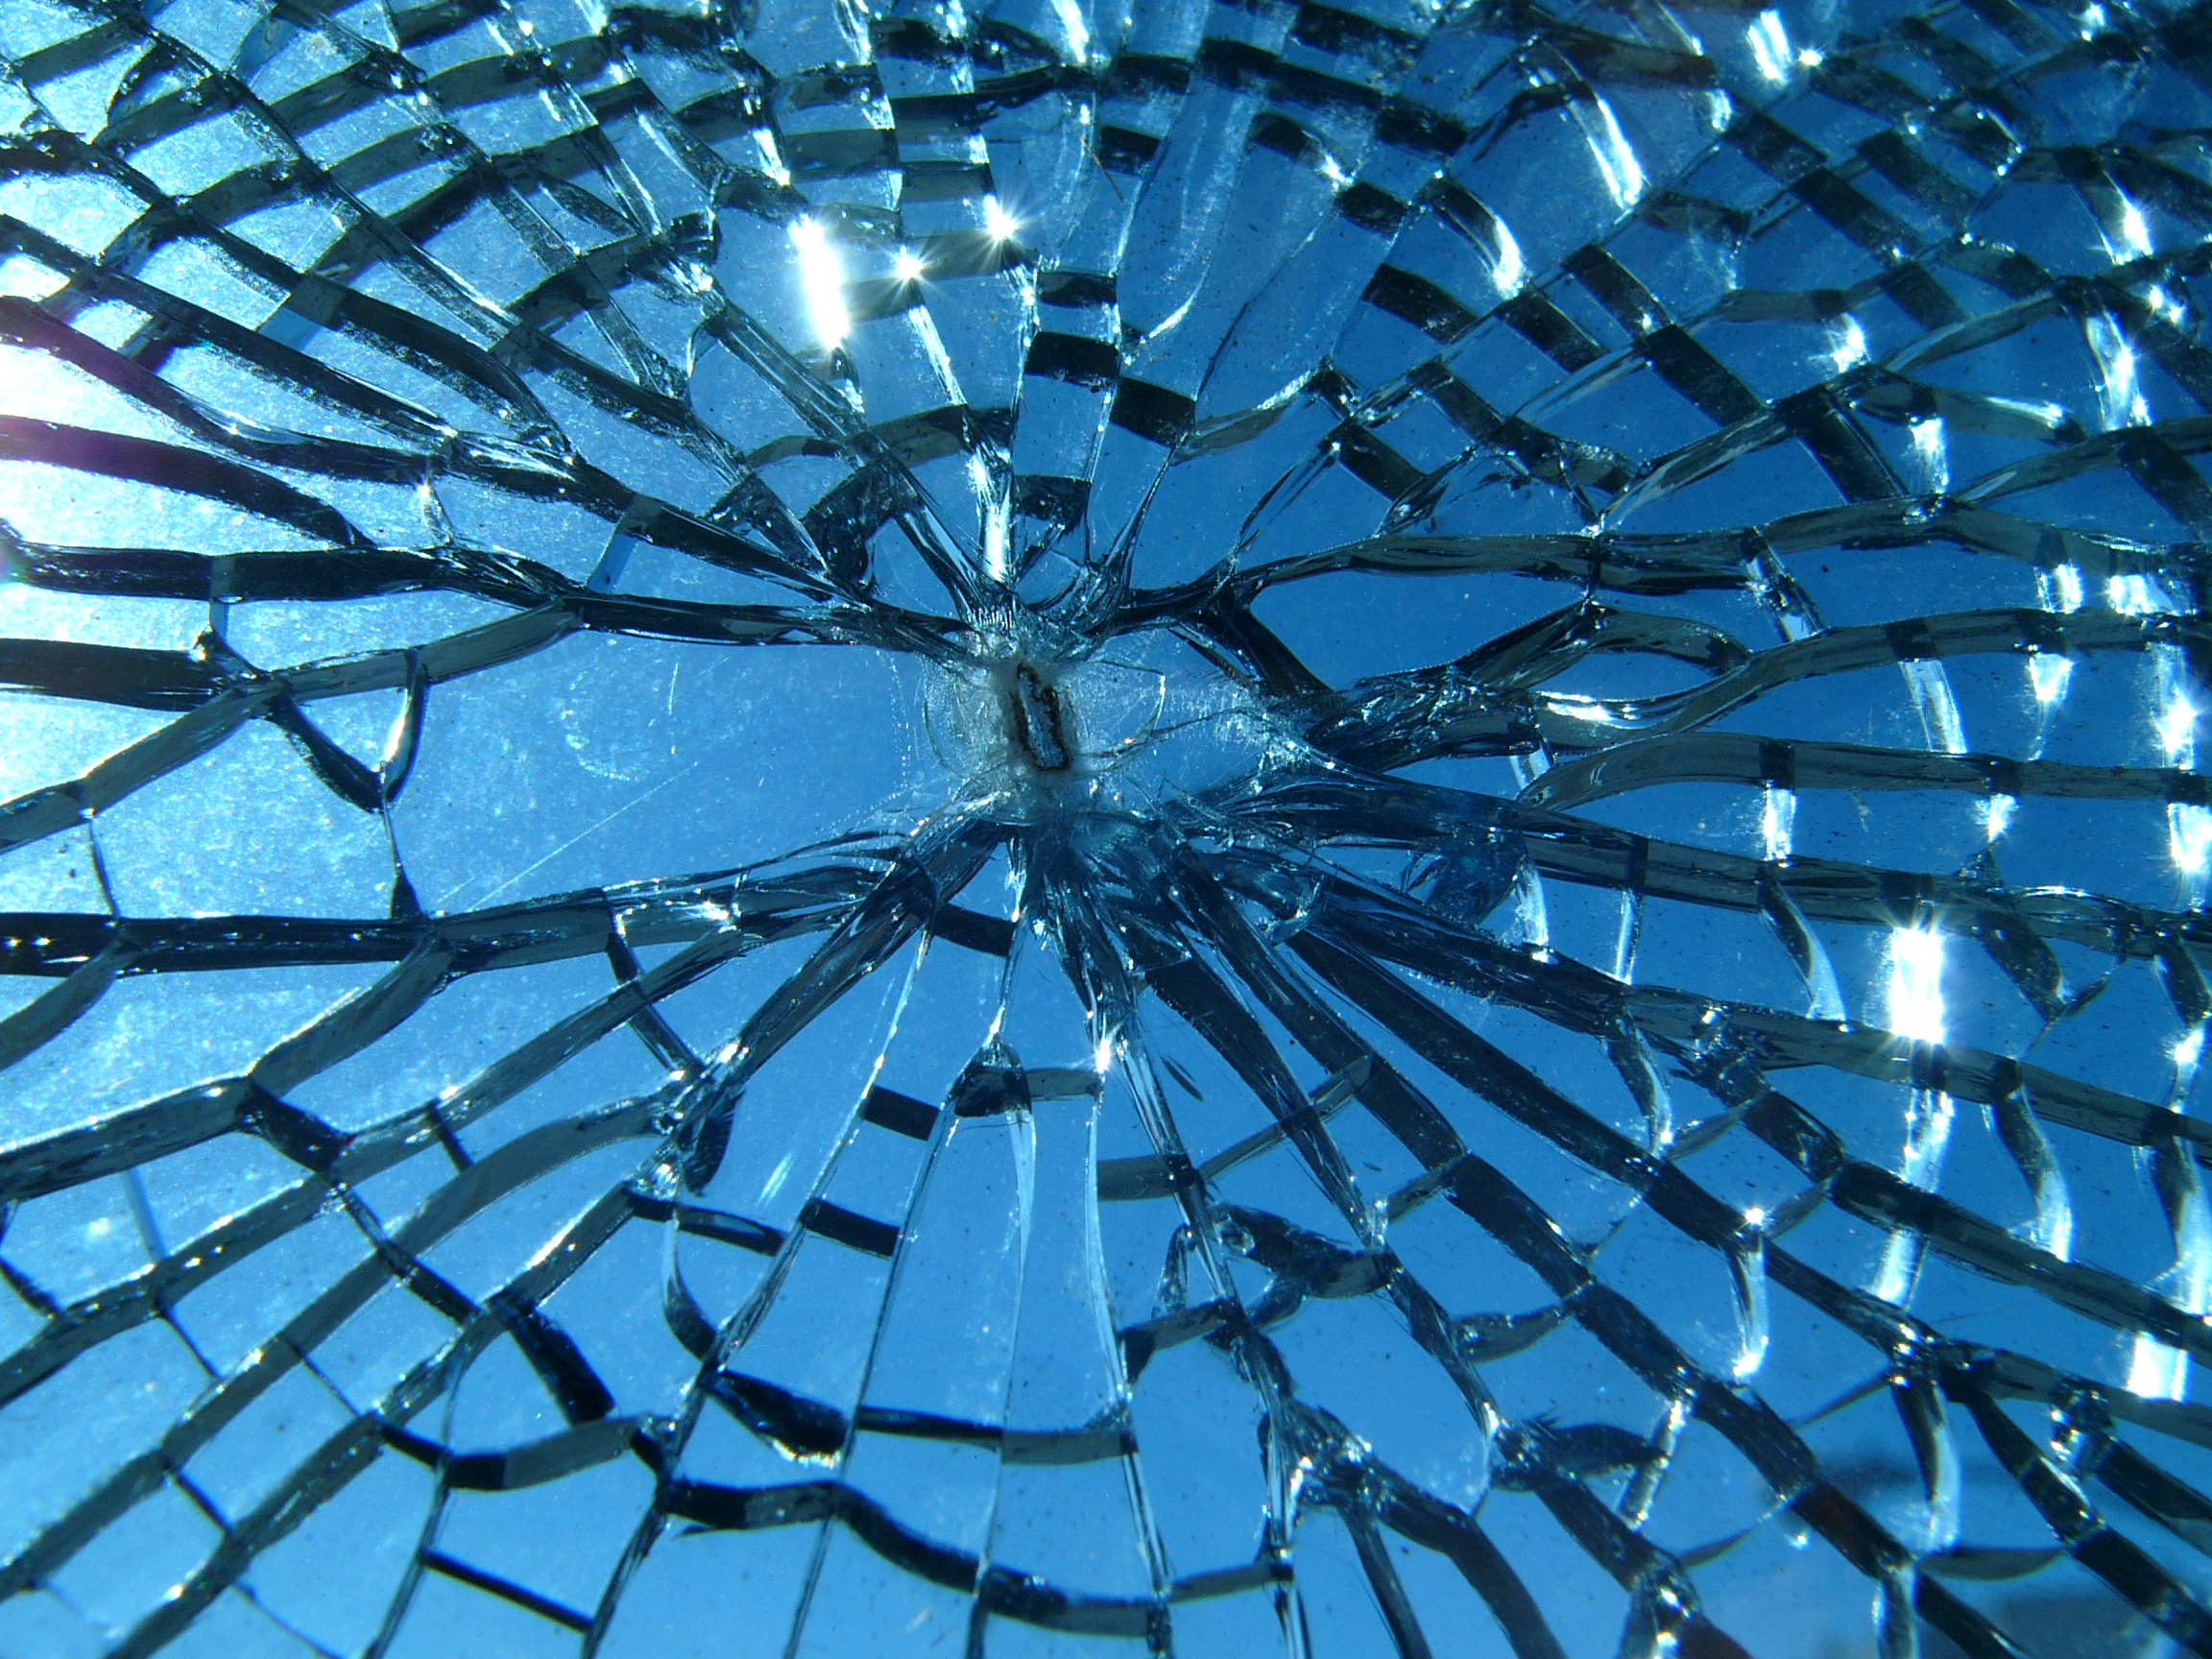 Images of Broken Glass | 2304x1728